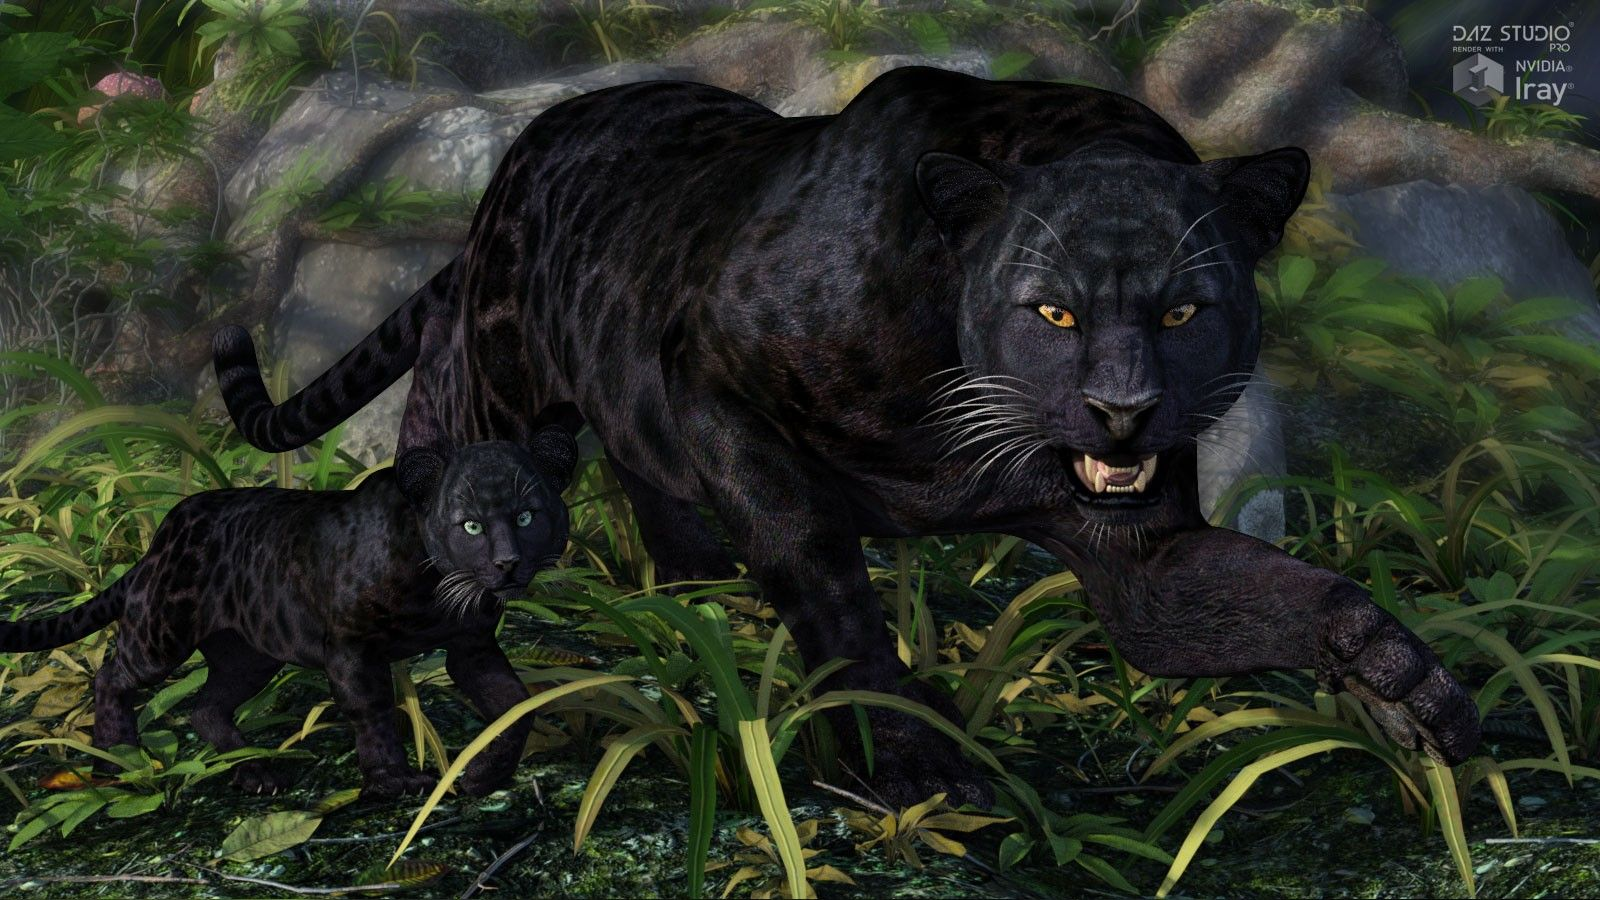 CWRW Black Panther for HW3D Big Cat 3D Models and 3D